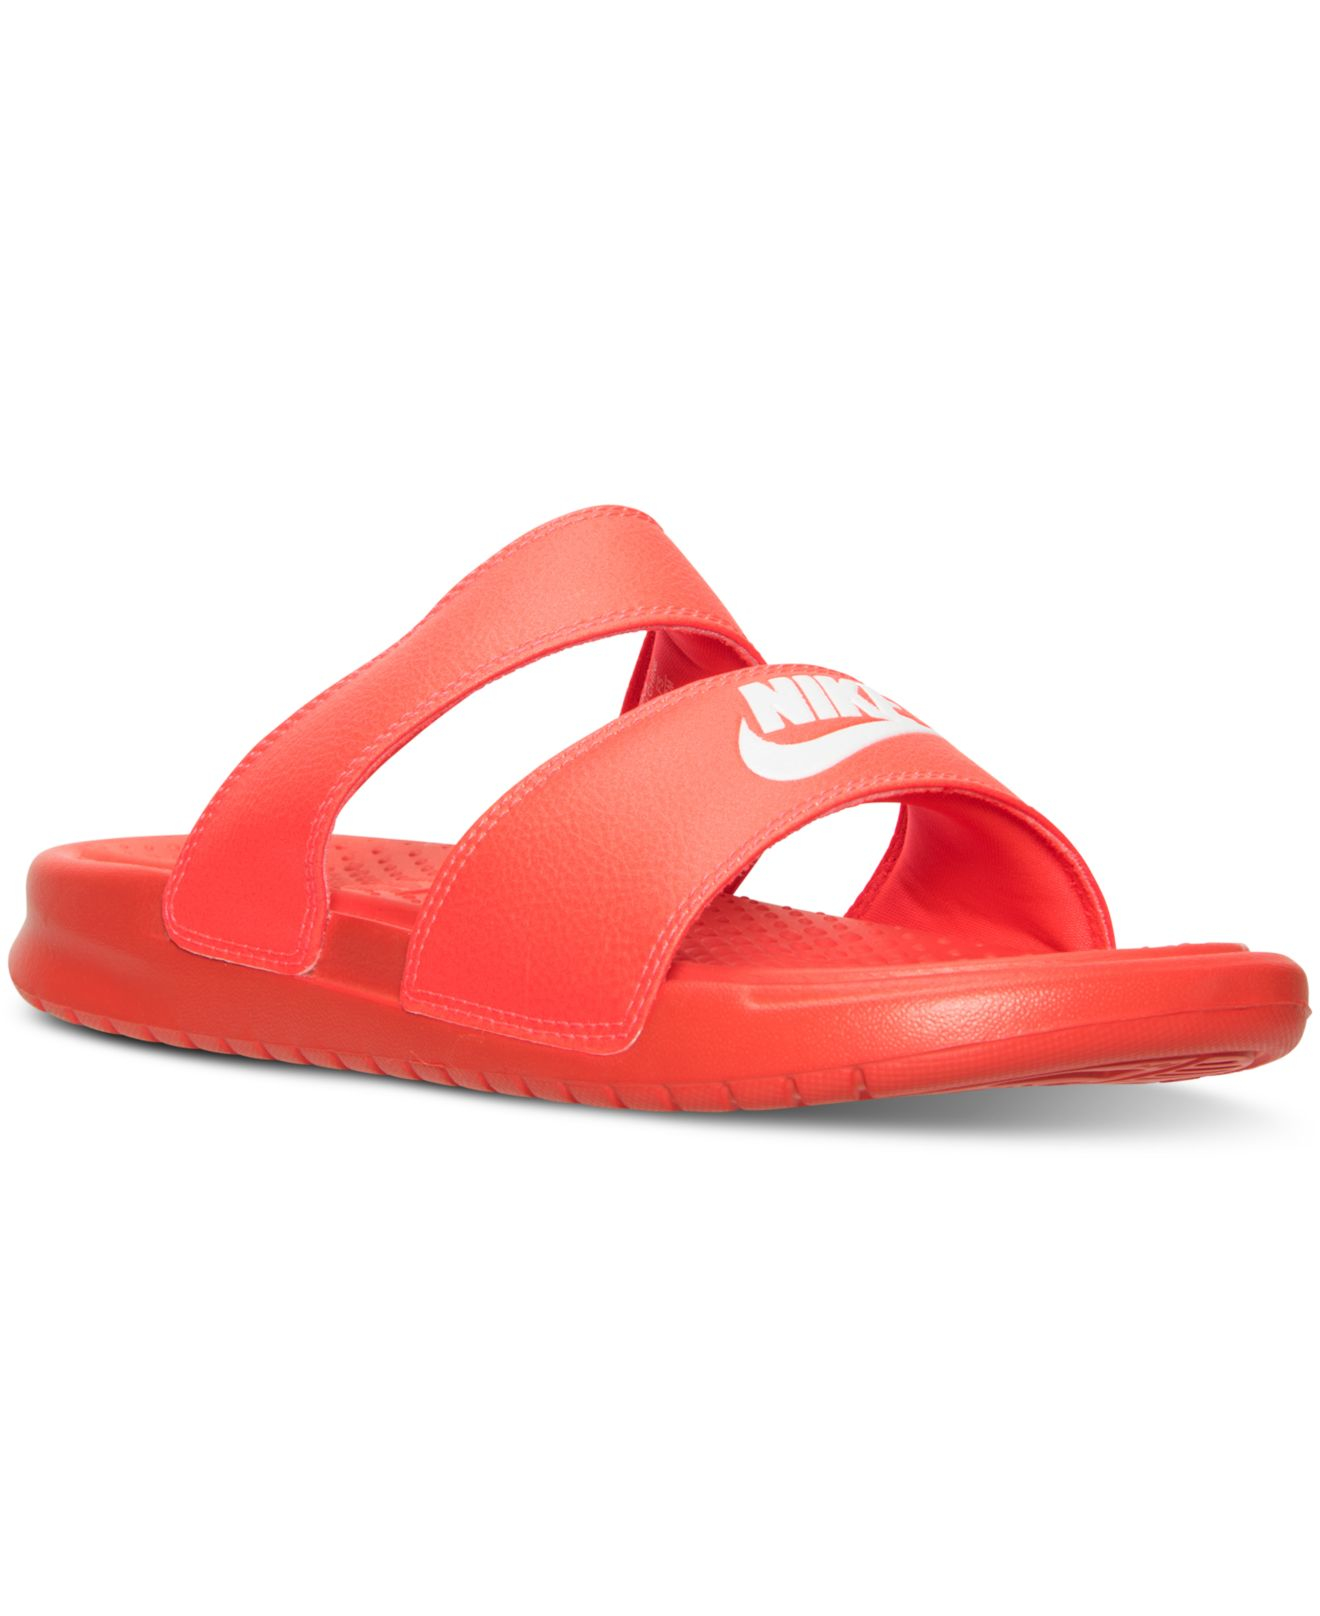 29bd2a1d9dedf1 ... hot lyst nike womens benassi duo ultra slide sandals from finish line  2e3f2 b44fe